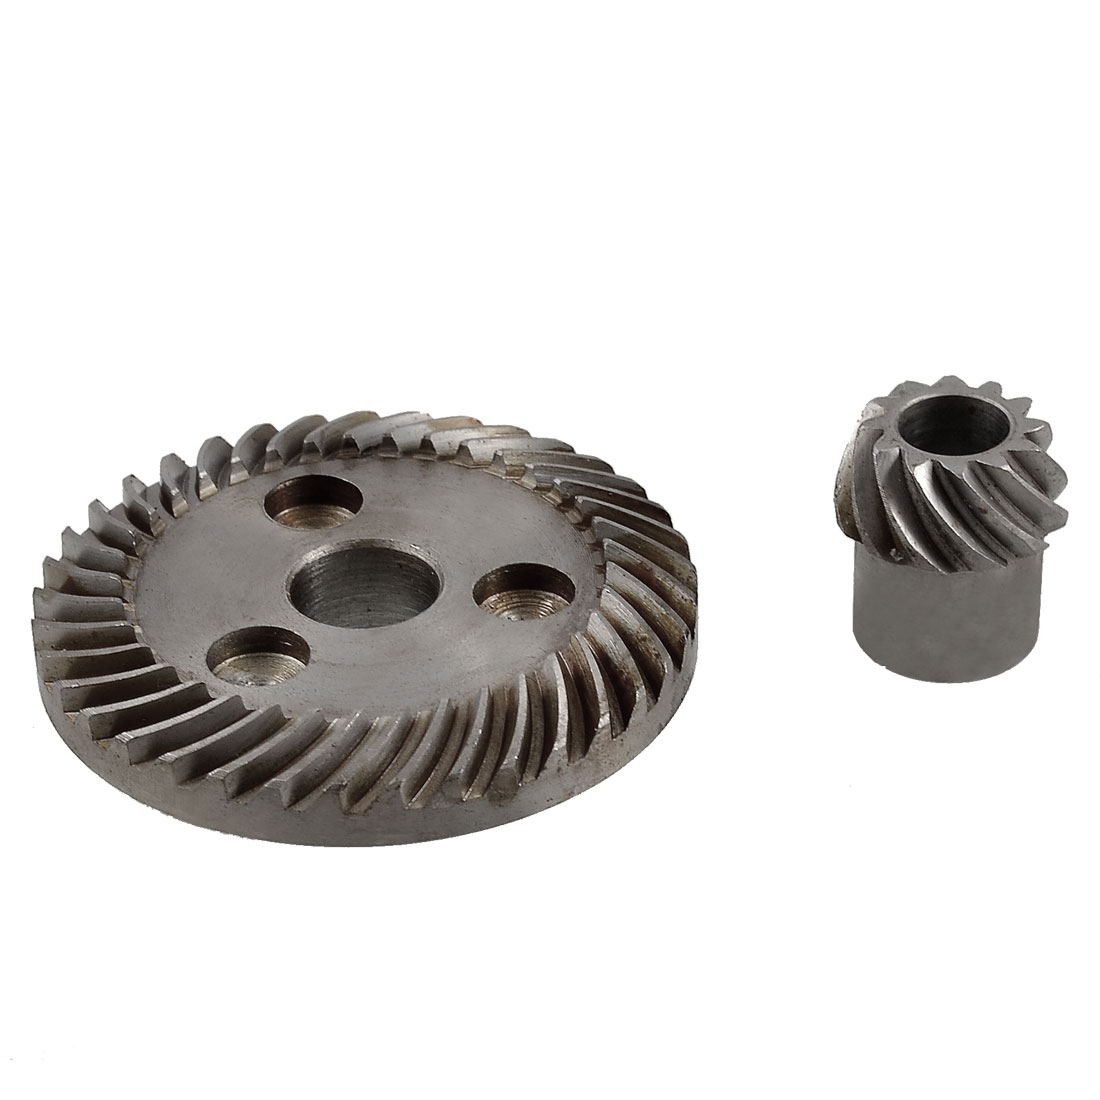 37 Teeth Spiral Bevel Gear Pinion Set for Black Decker 6288 Angle Grinder